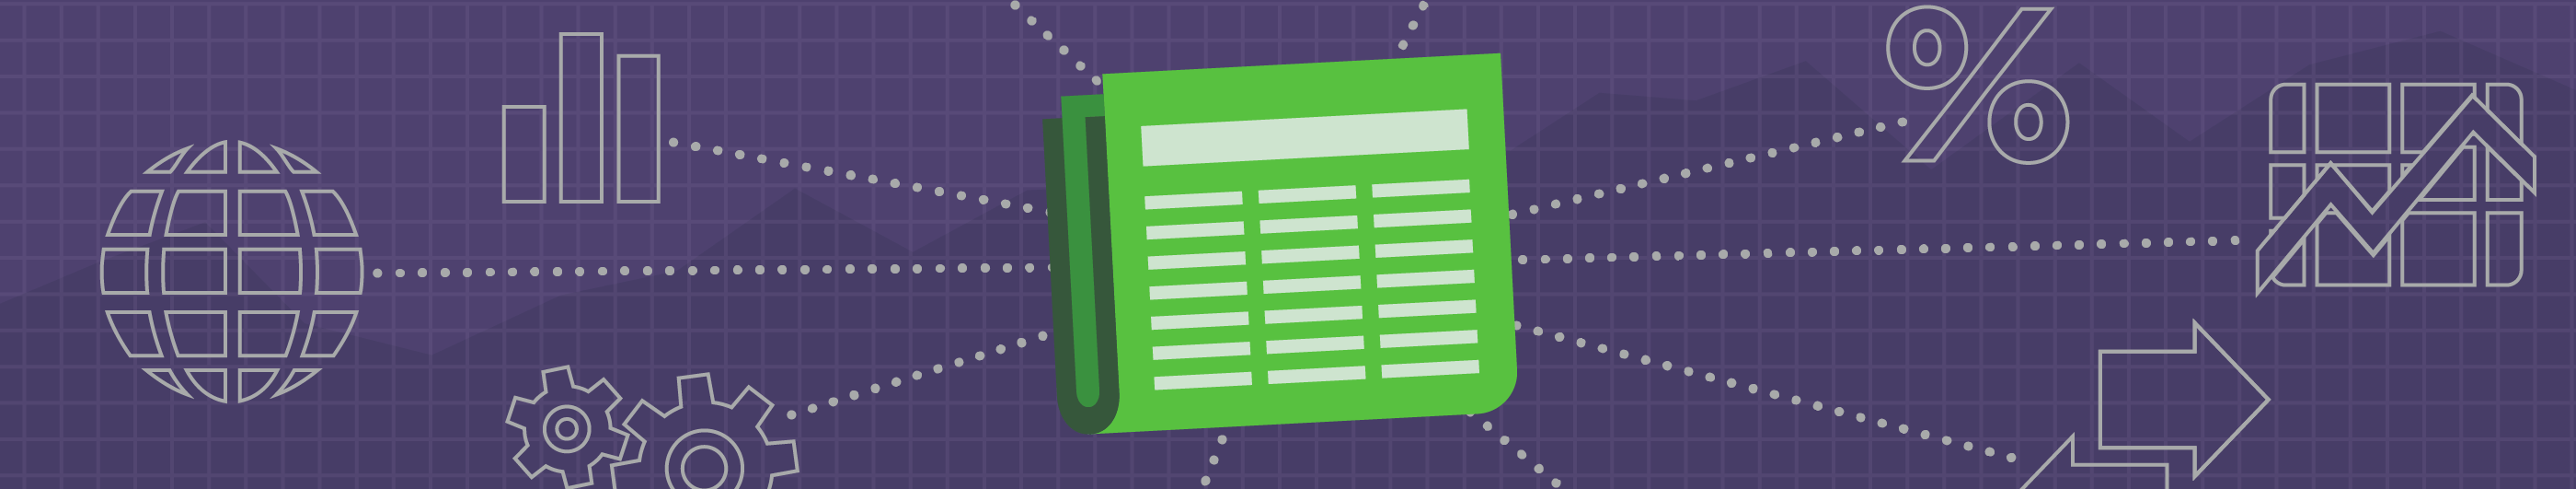 Illustration of a green colored newspaper on a purple background